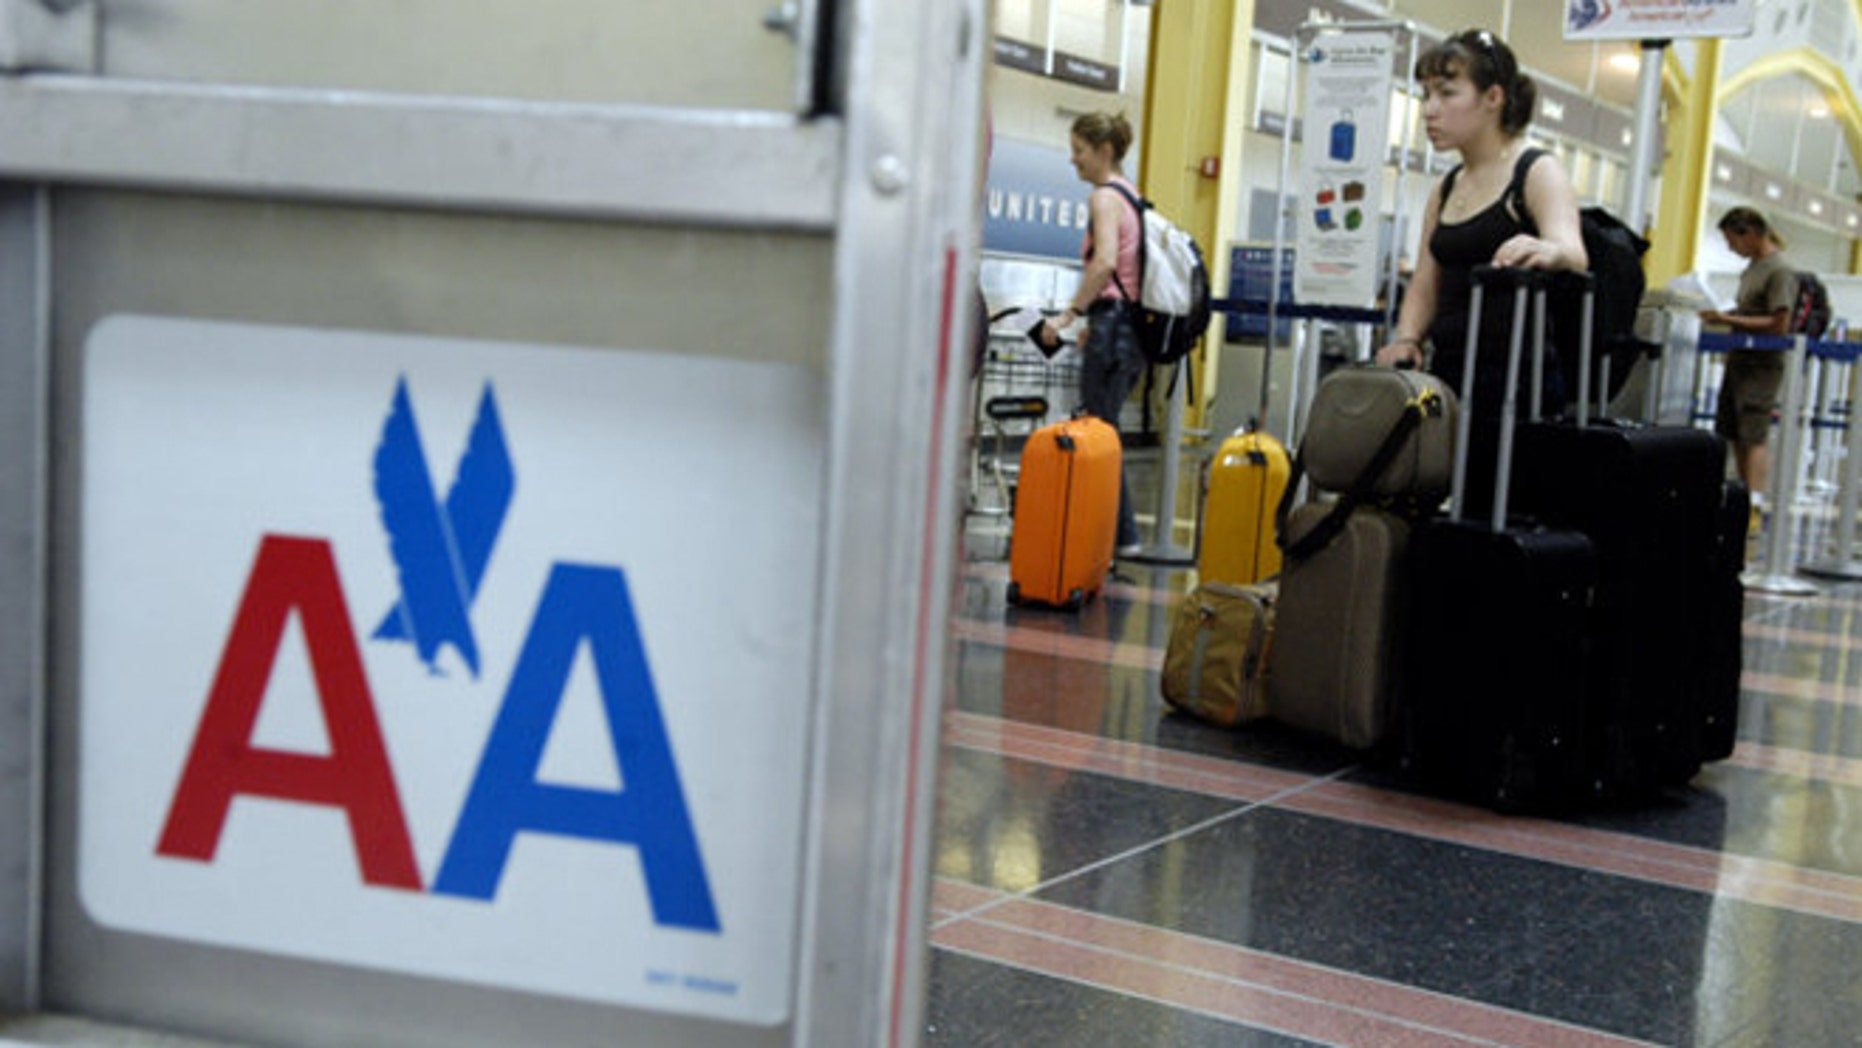 A woman waits in line with luggage to check in for an American Airlines flight at Reagan National Airport in Arlington, Va.